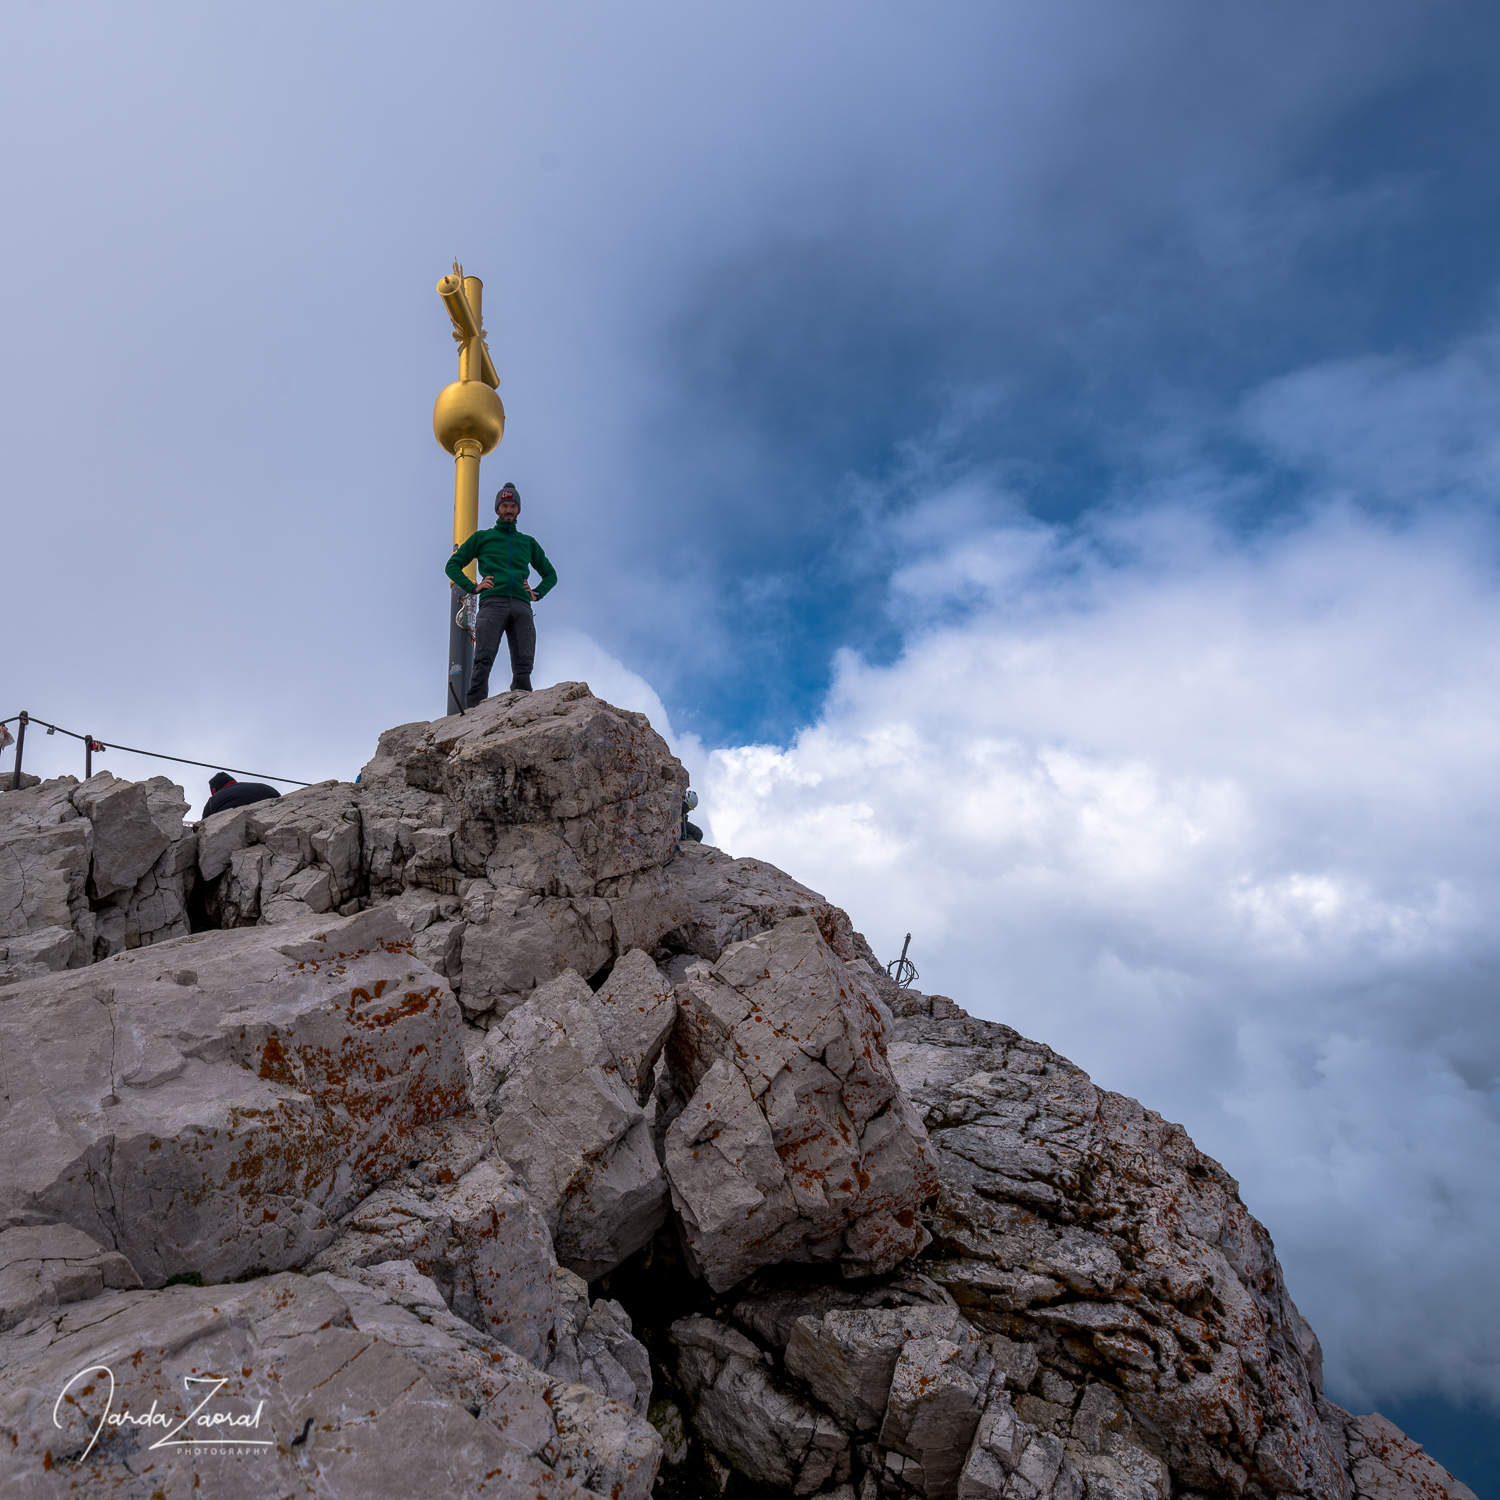 Valuable moment - noone on the top of Zugspitze